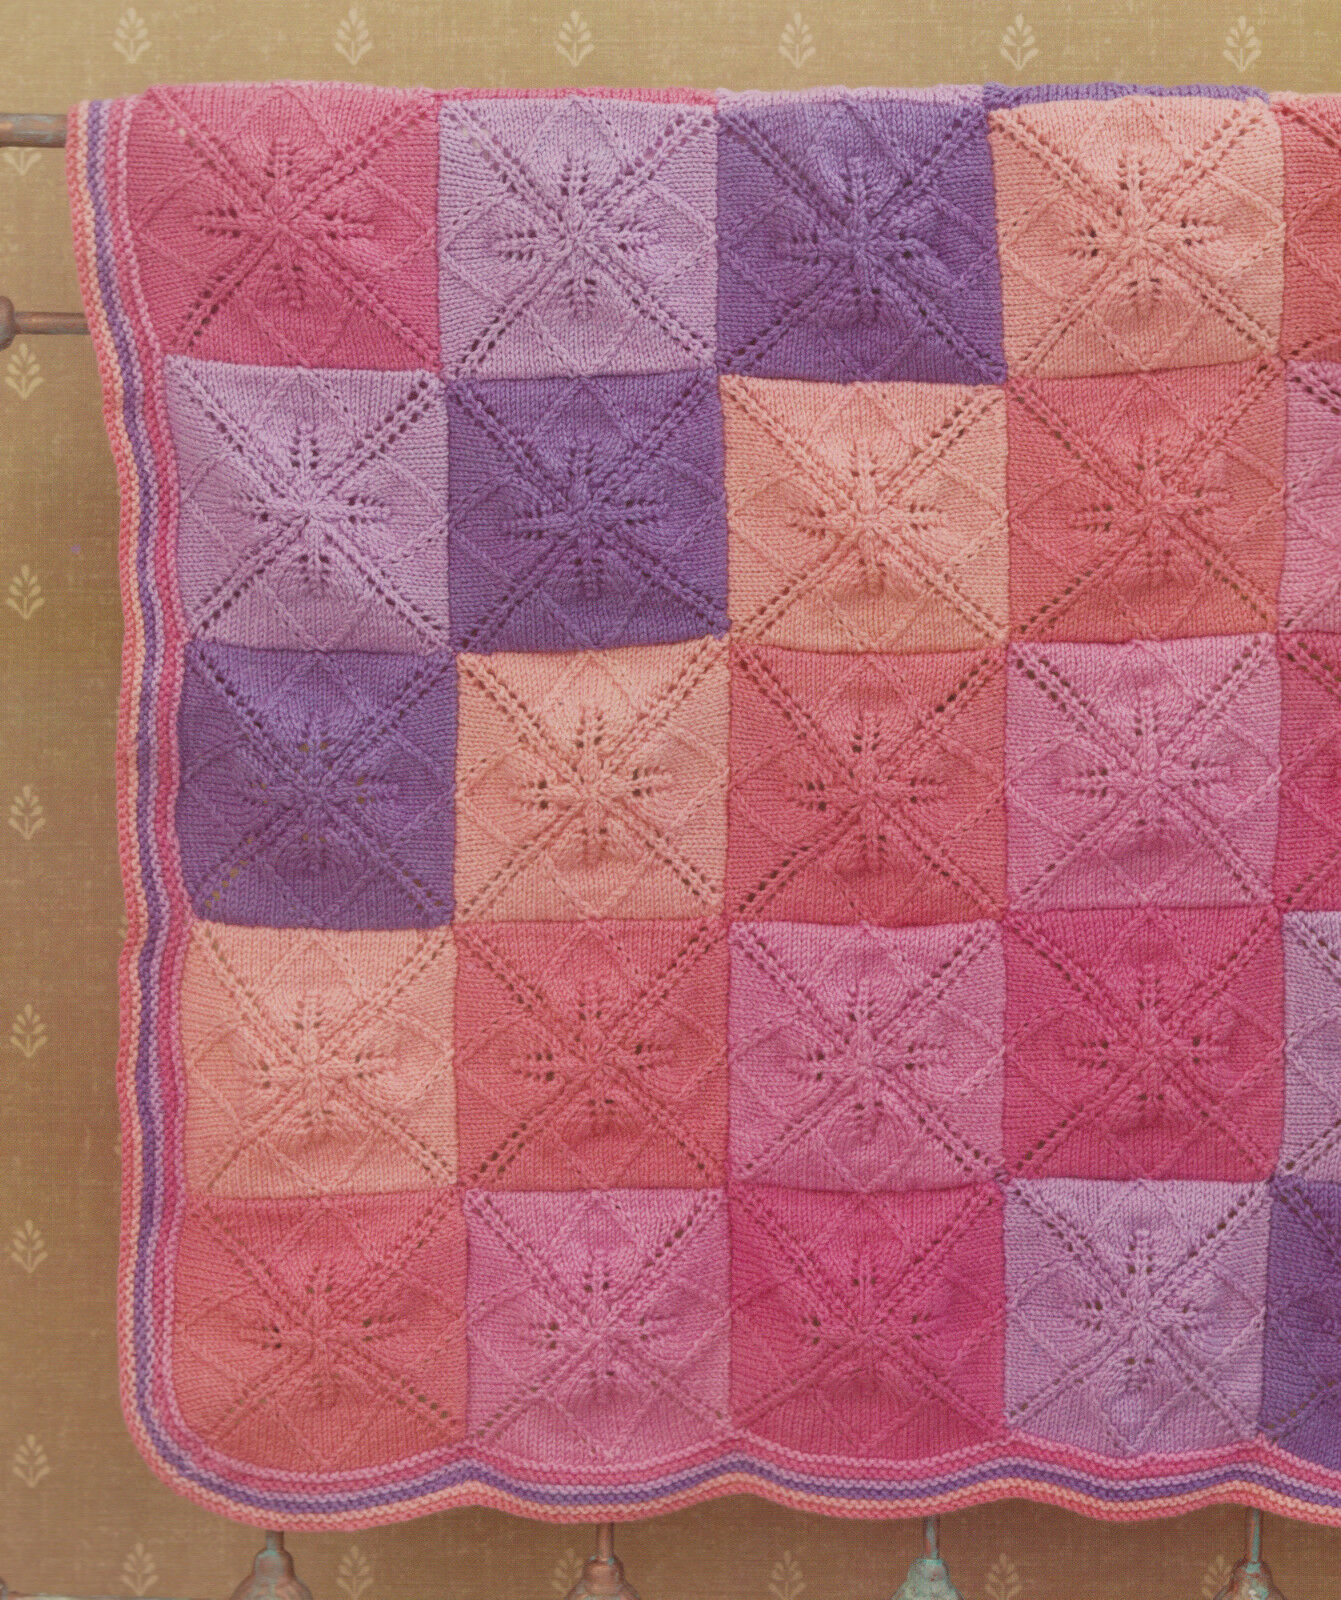 Vogue Knitting Leaf Blanket Pattern : Baby Blanket Knitting Pattern Indivual Leaf Squares ...